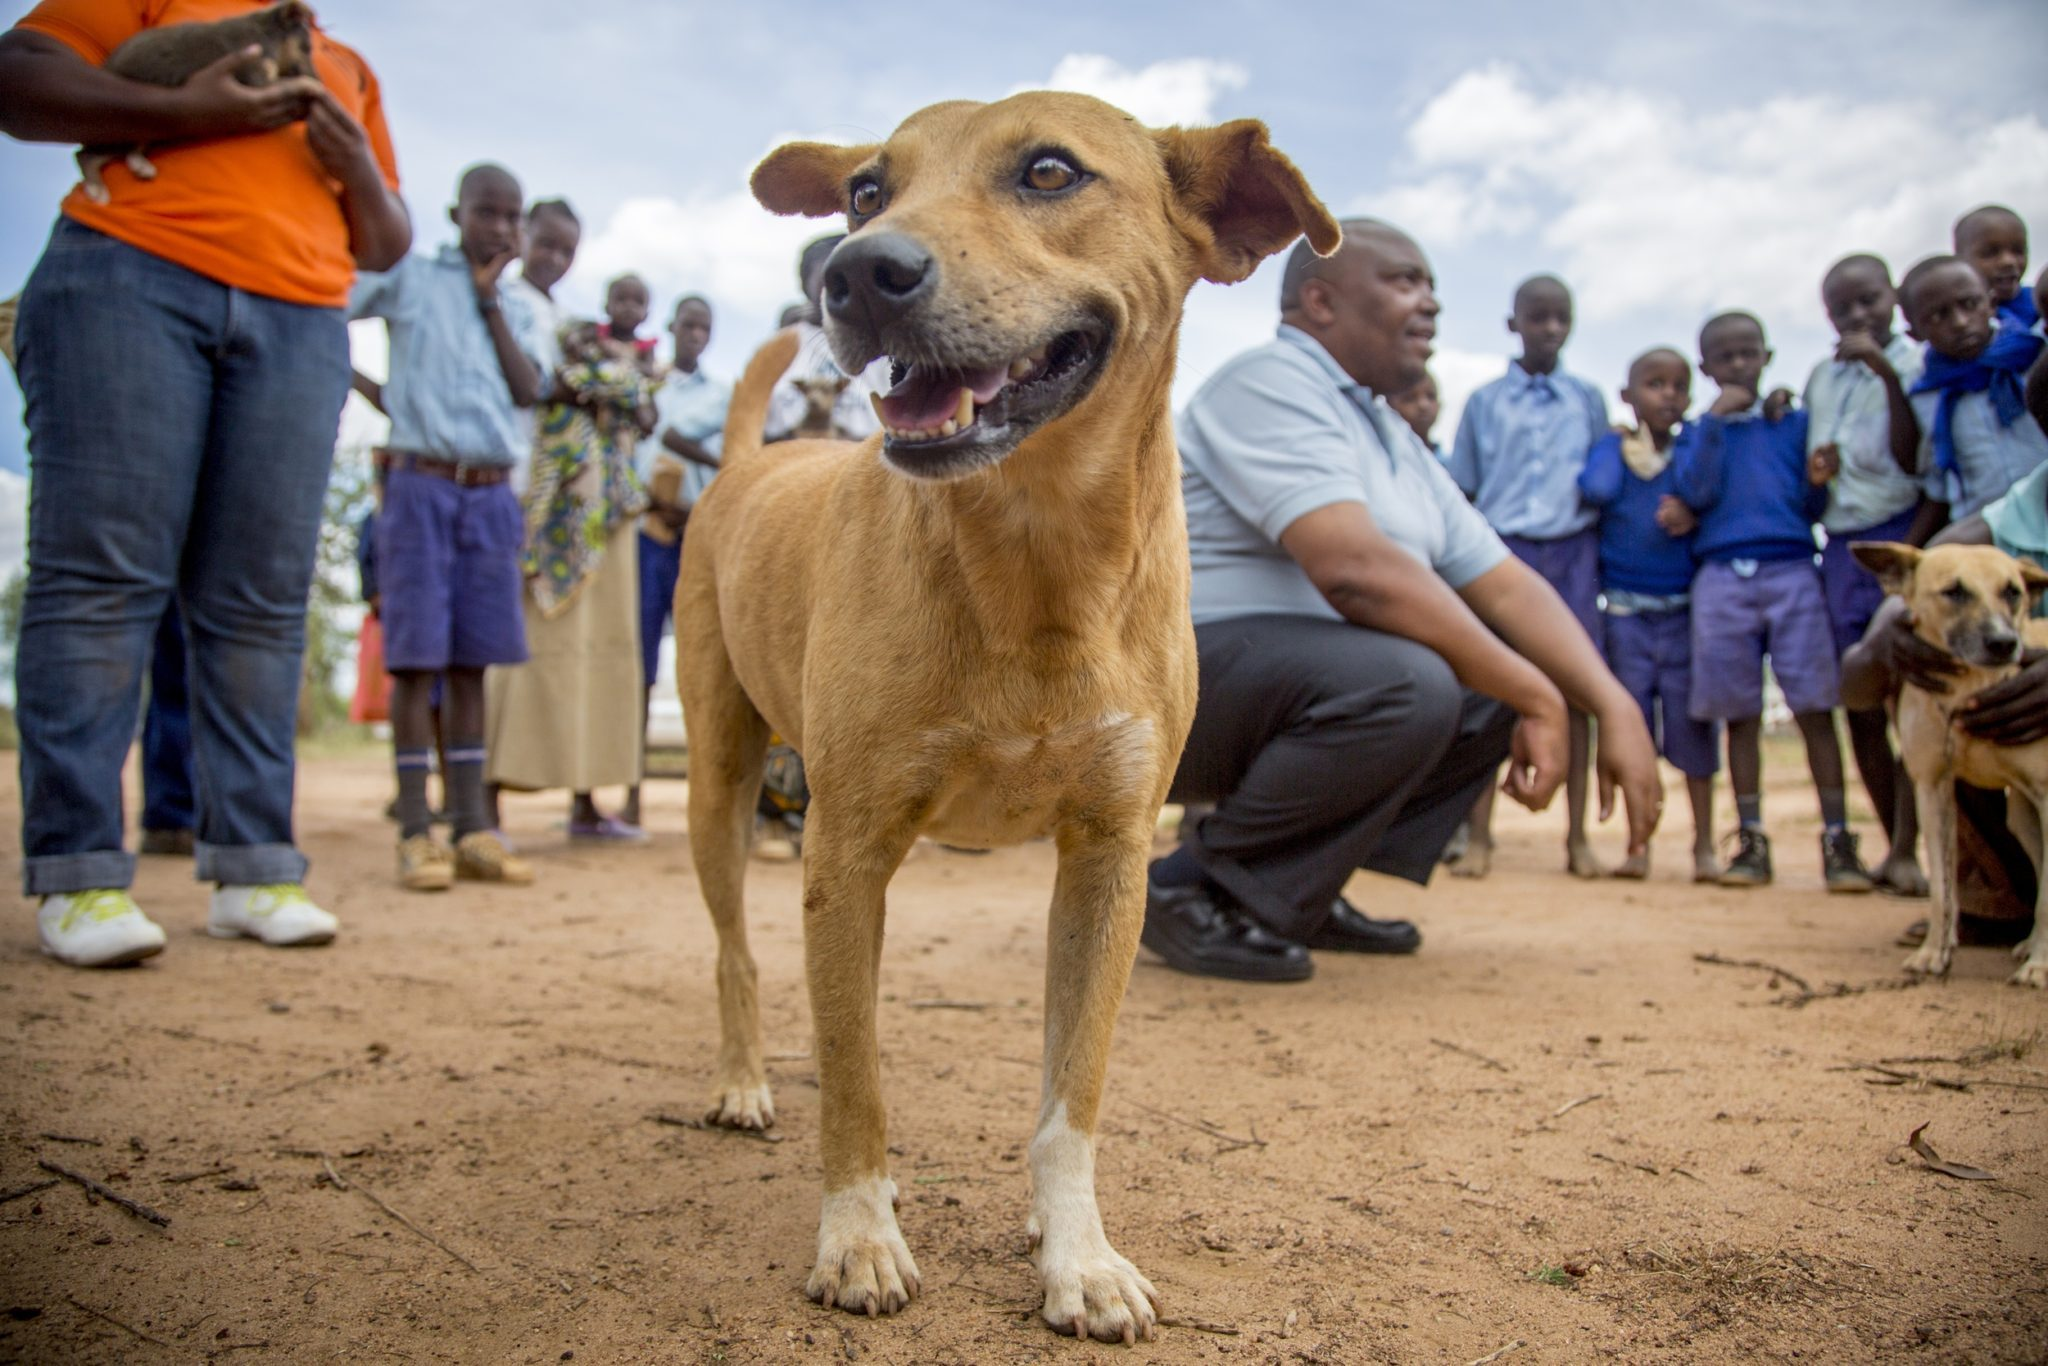 Breathtaking Animal Welfare World Animal Protectioncelebrated A Major Achievement Giving Over Million Rabies Vaccinations Todogs Se Dogs Kenya Have A Bright Future Thanks To This Rabies Day bark post How Often Do Dogs Need Rabies Shots